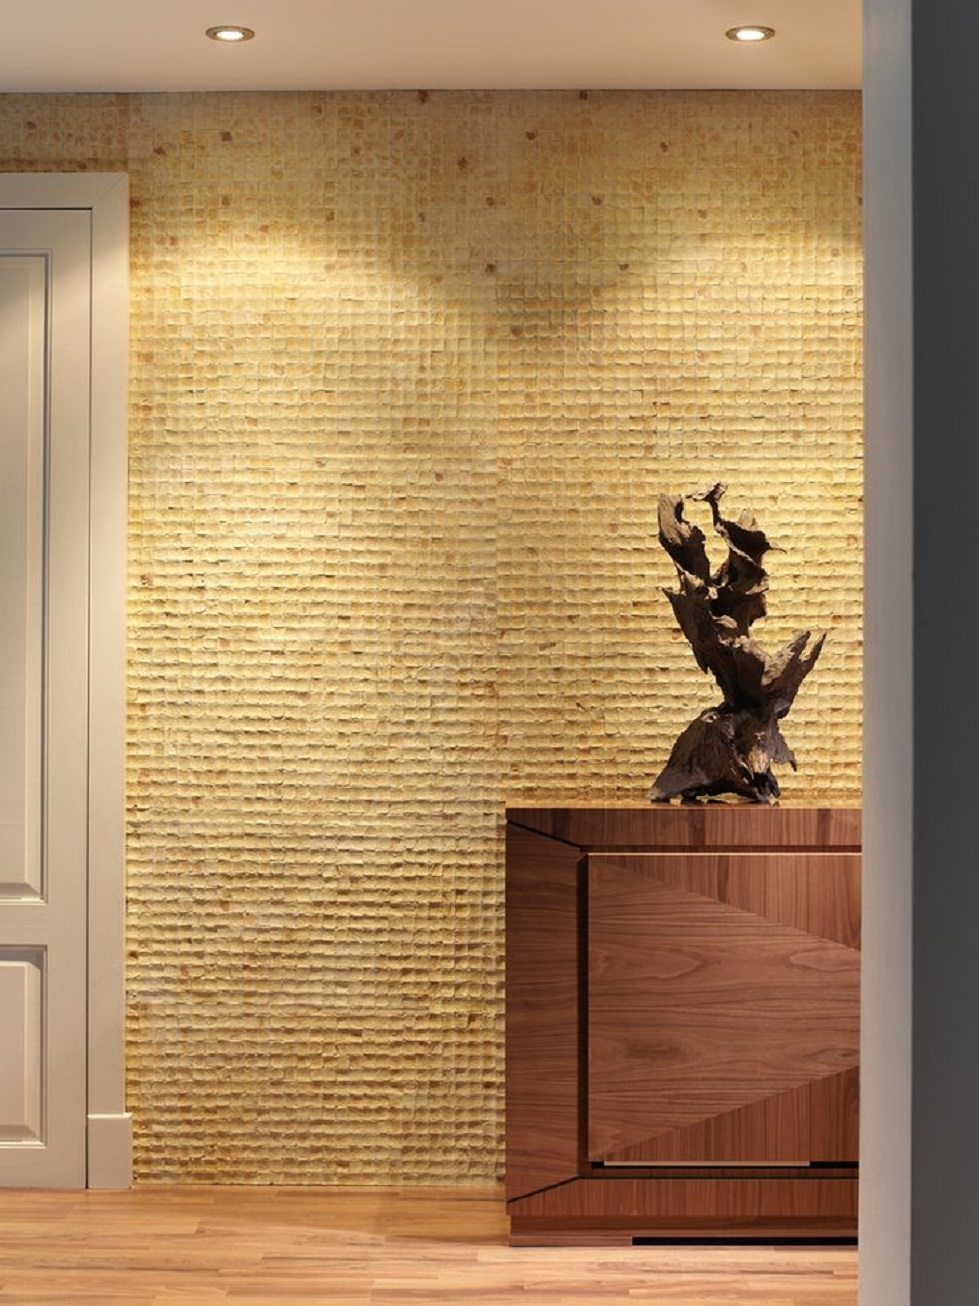 Excellent Wall Decorative Panel Images - The Wall Art Decorations ...